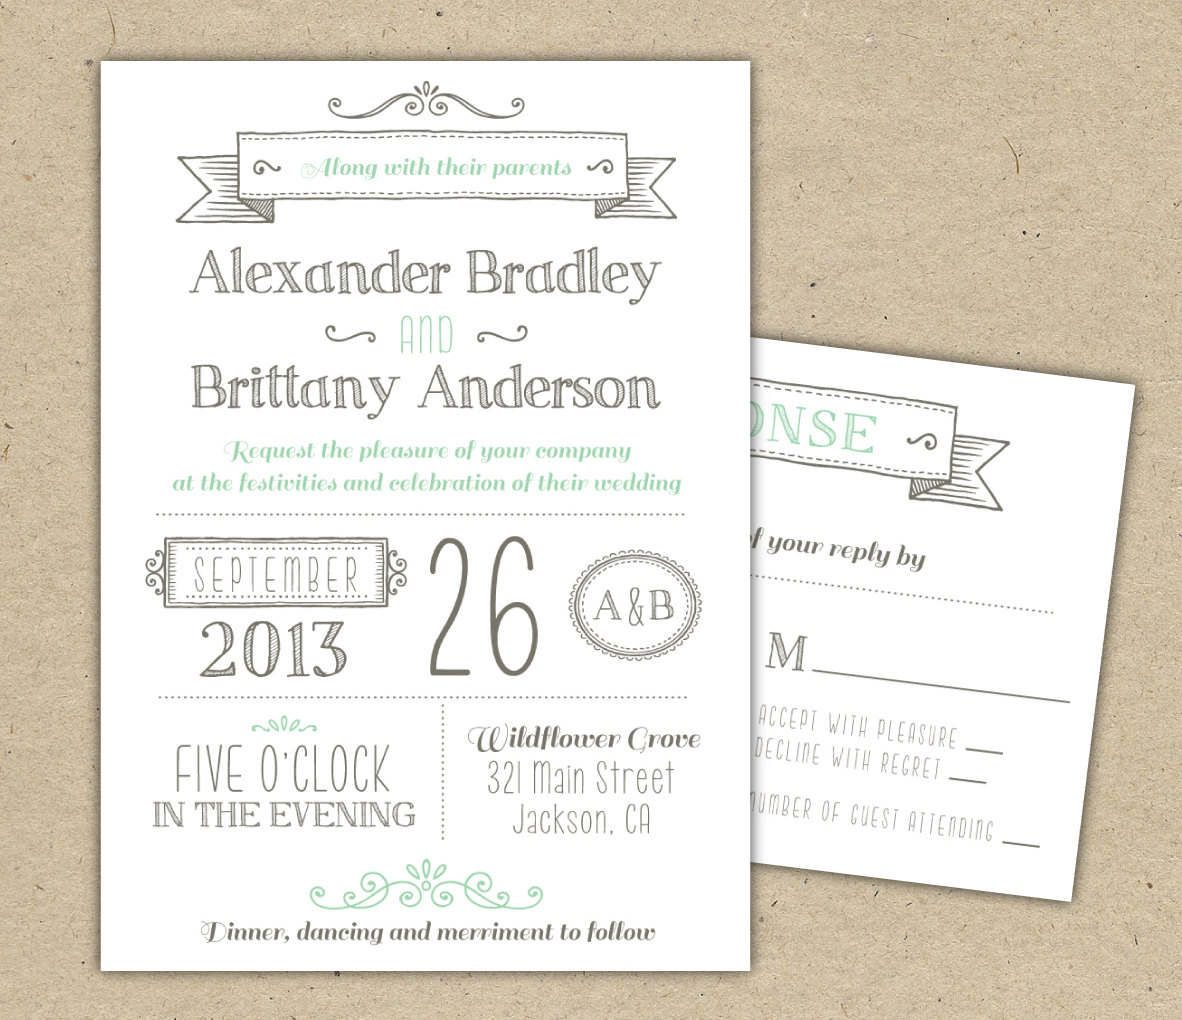 Wedding Invites Templates Free Printable http://rplg.co/eb5a5200 ...